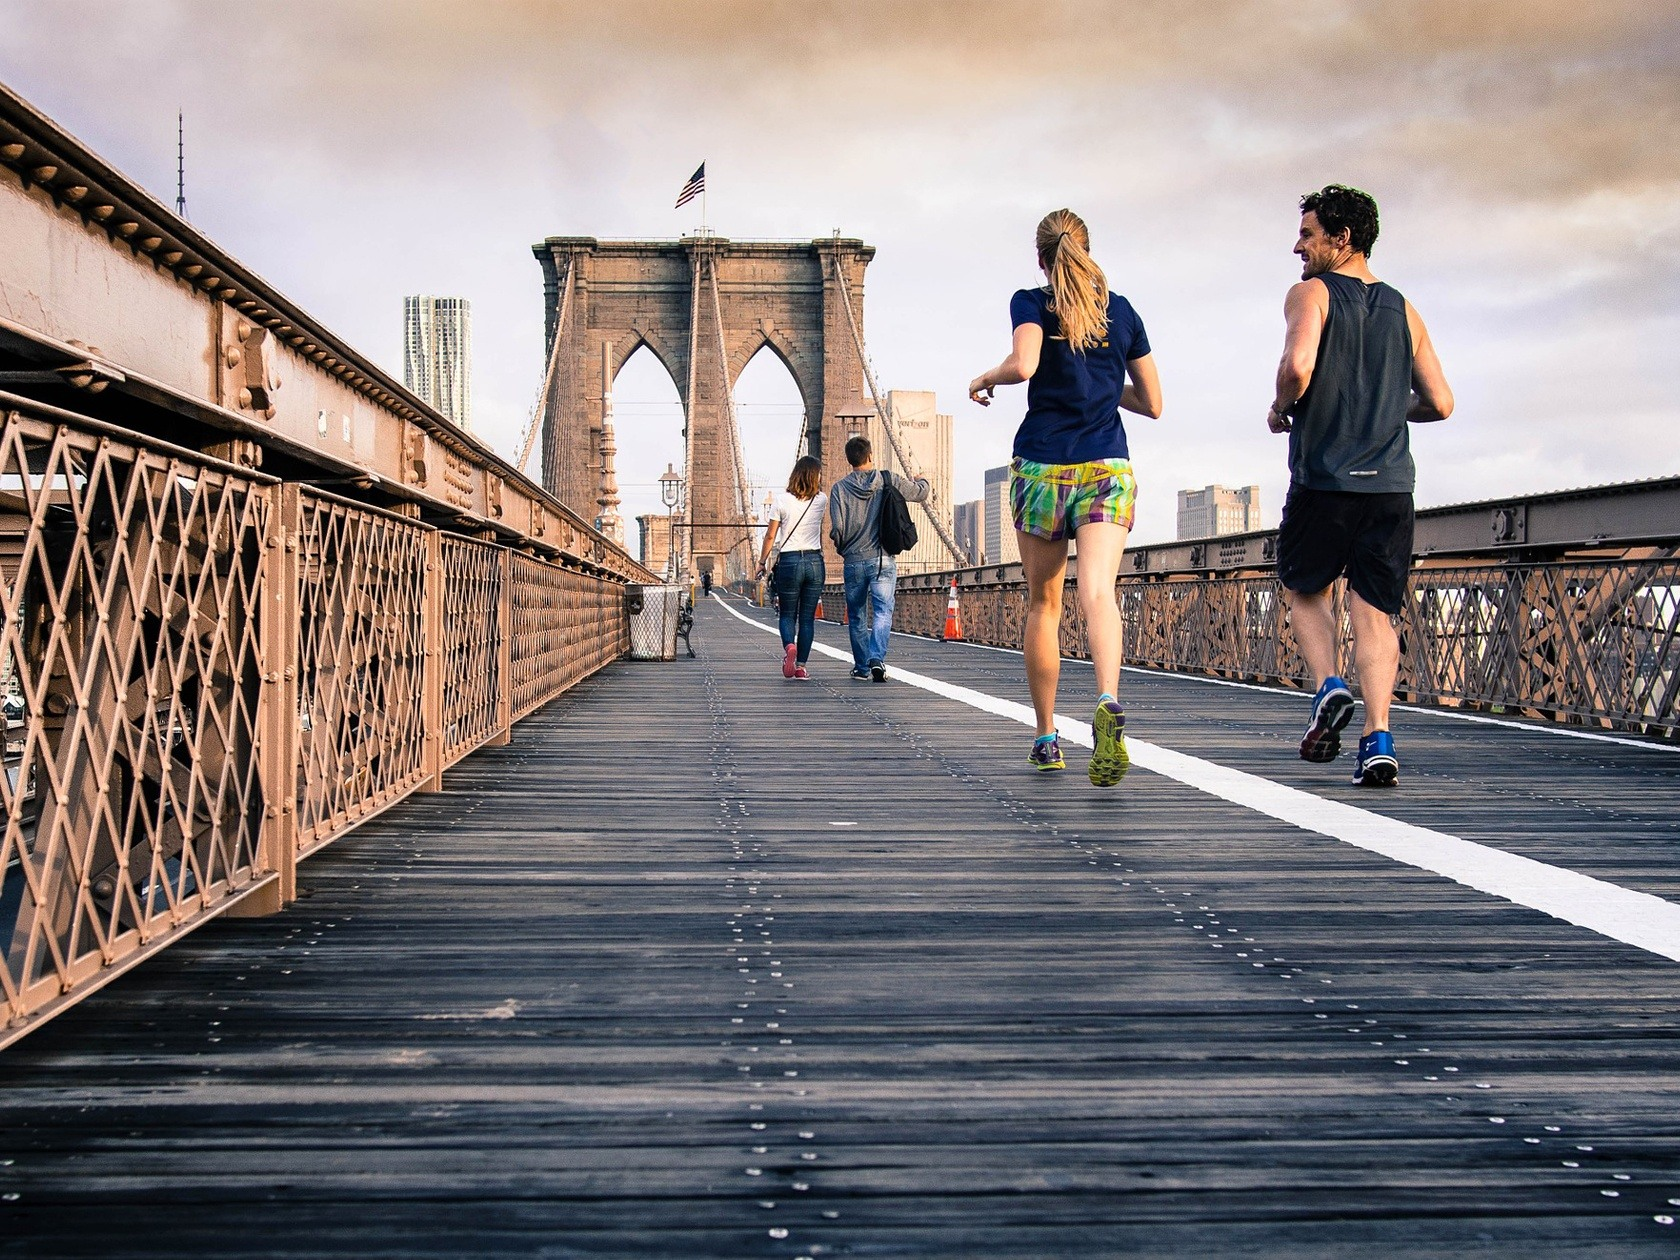 Coureurs pratiquant le running sur le pont de Brooklyn